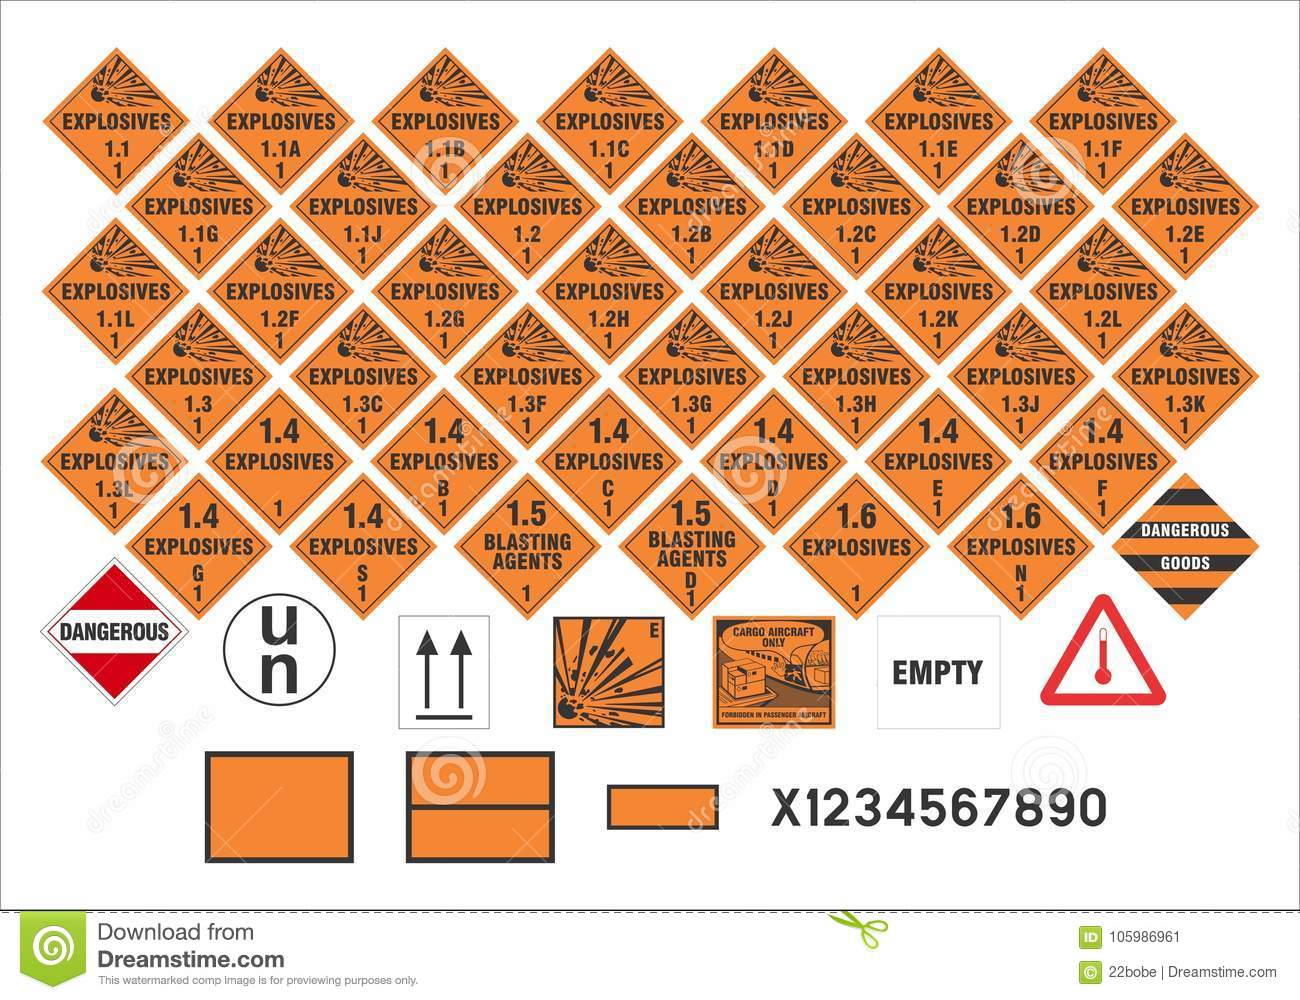 Safety warning signs transport signs 13 vector stock safety warning signs transport signs 13 vector biocorpaavc Choice Image